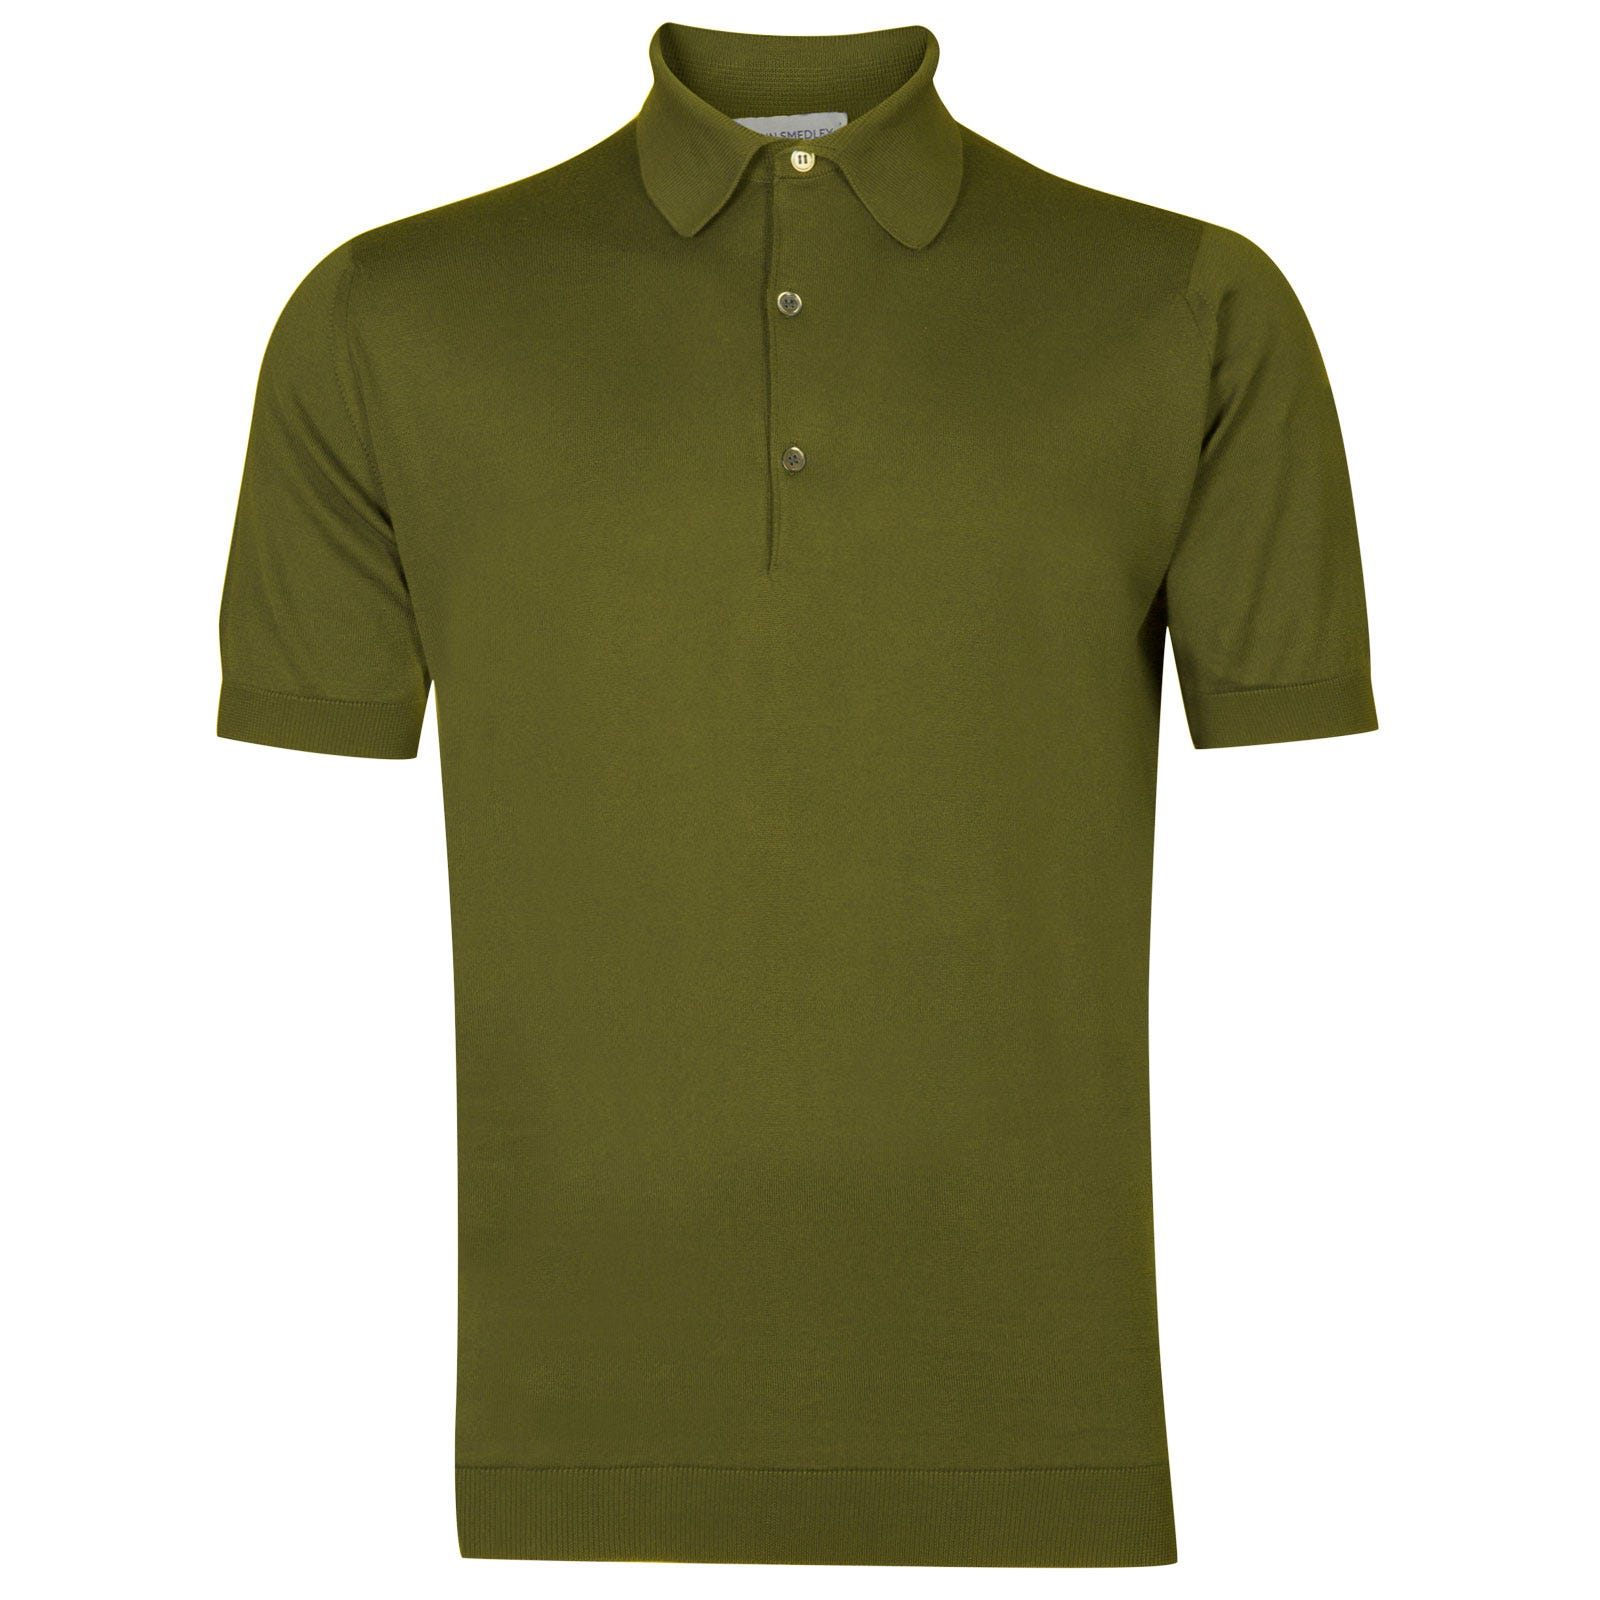 John Smedley adrian Sea Island Cotton Shirt in Lumsdale Green-L